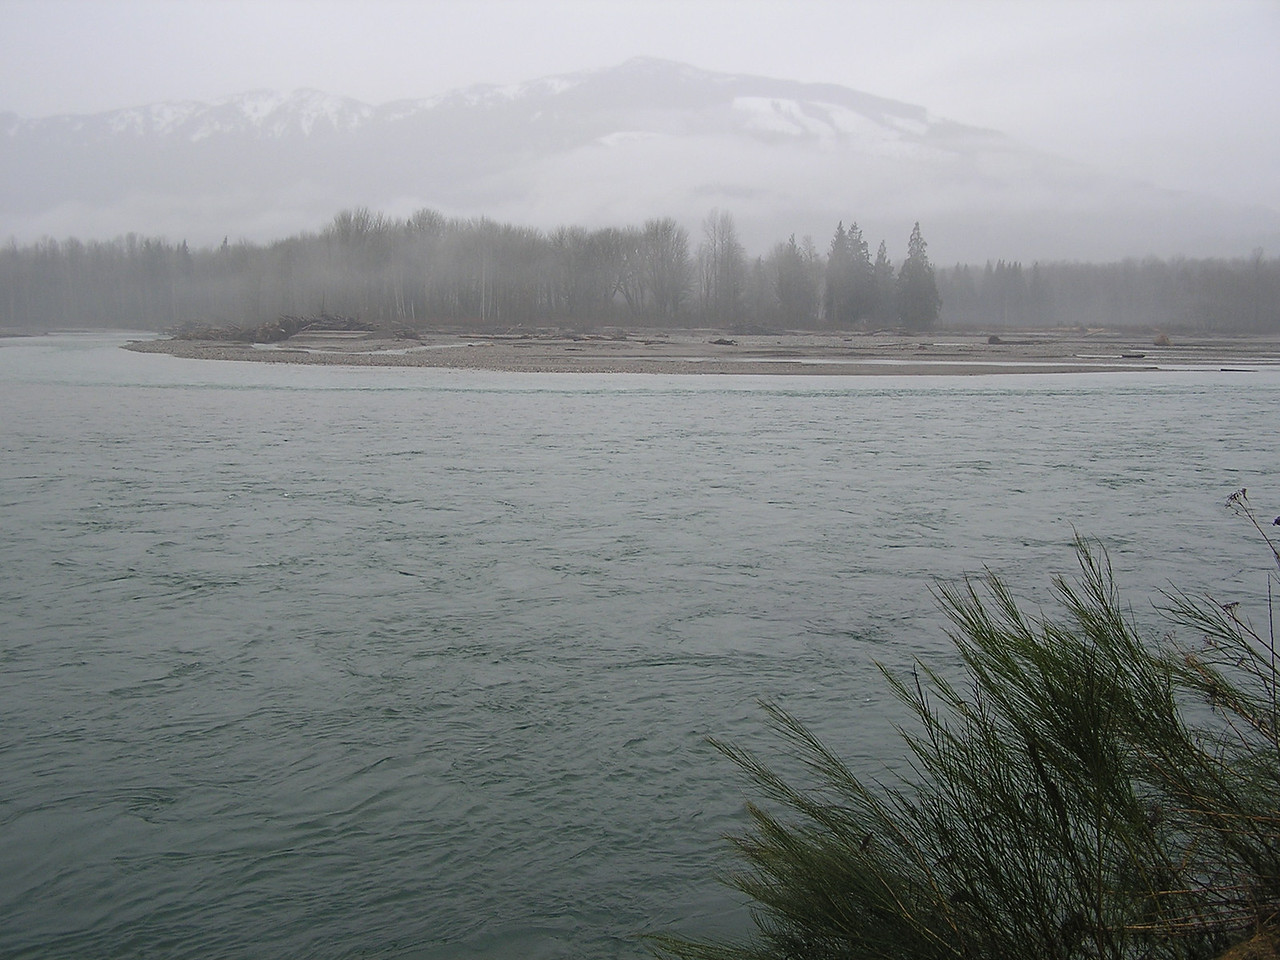 Looking across the Skagit River in a southeastern direction.